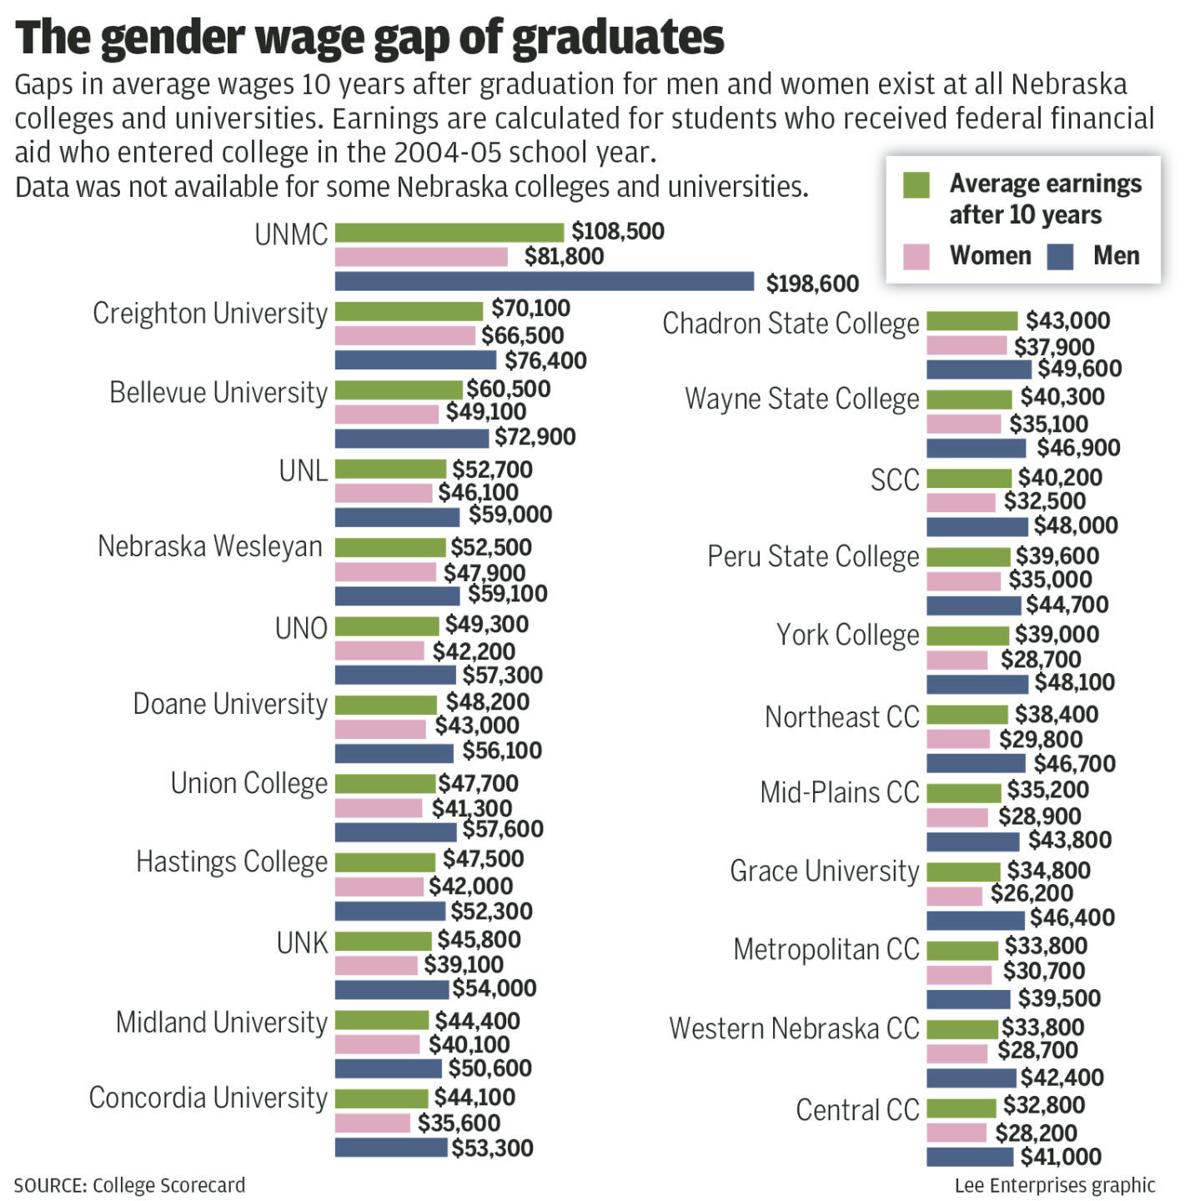 The gender wage gap of graduates